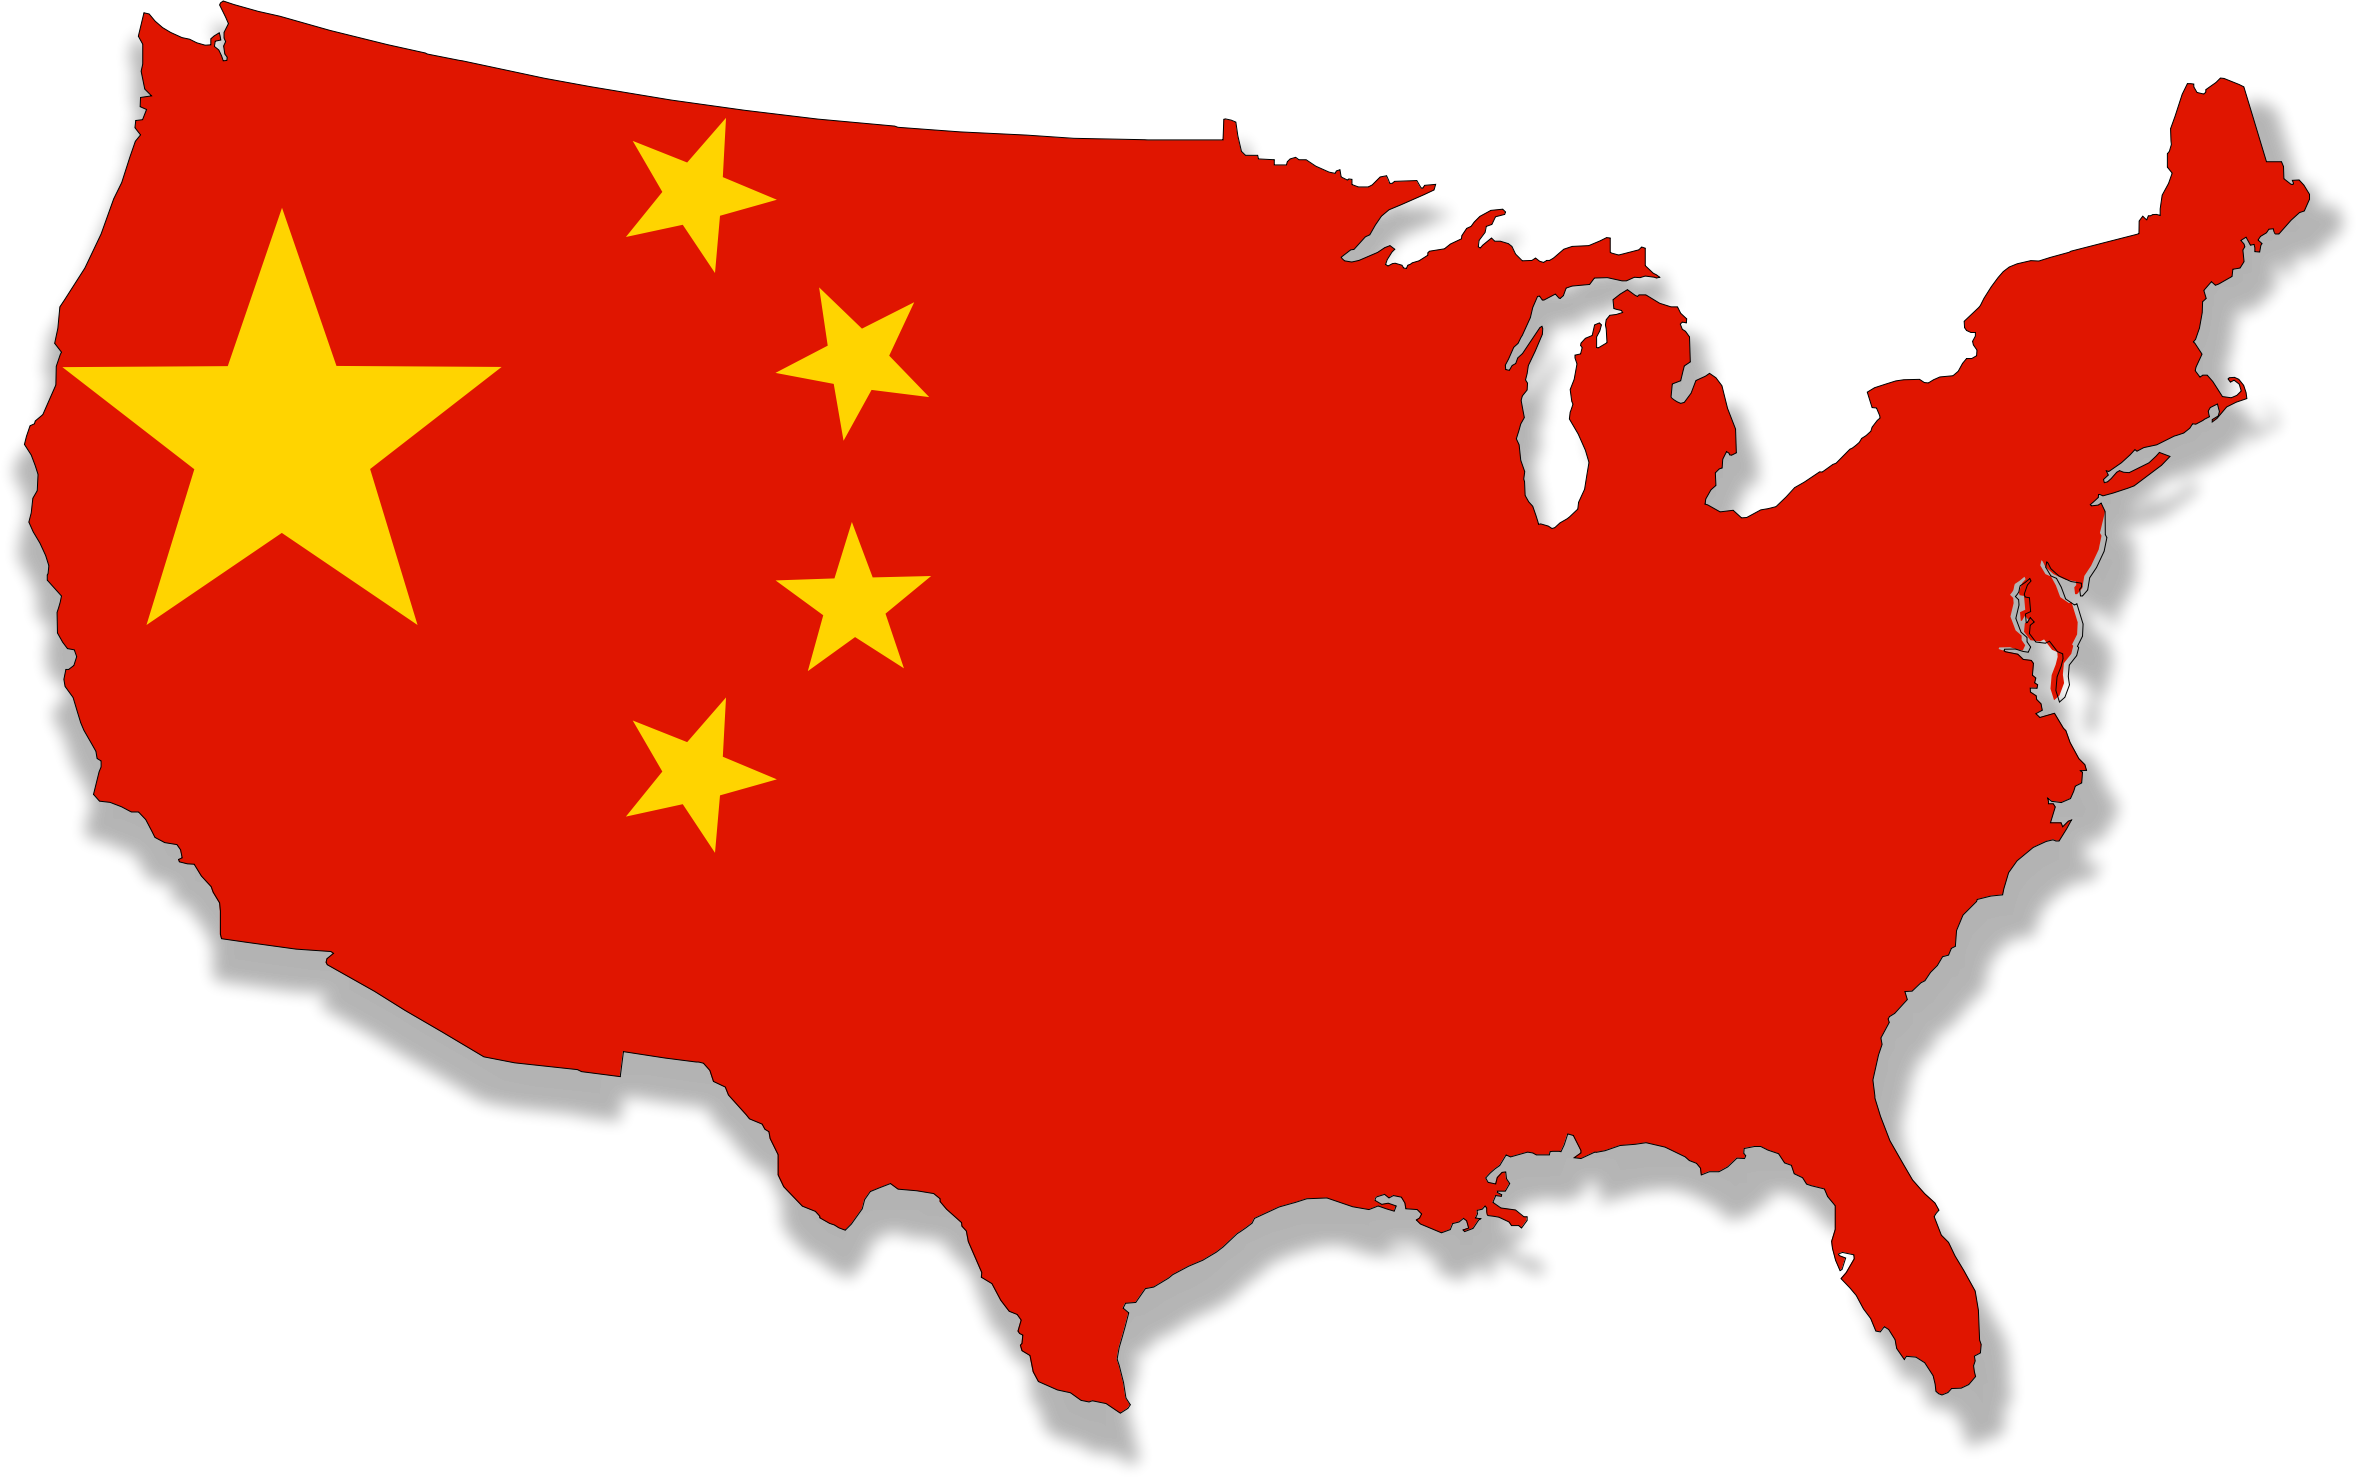 China clipart map. Usa in about yrs